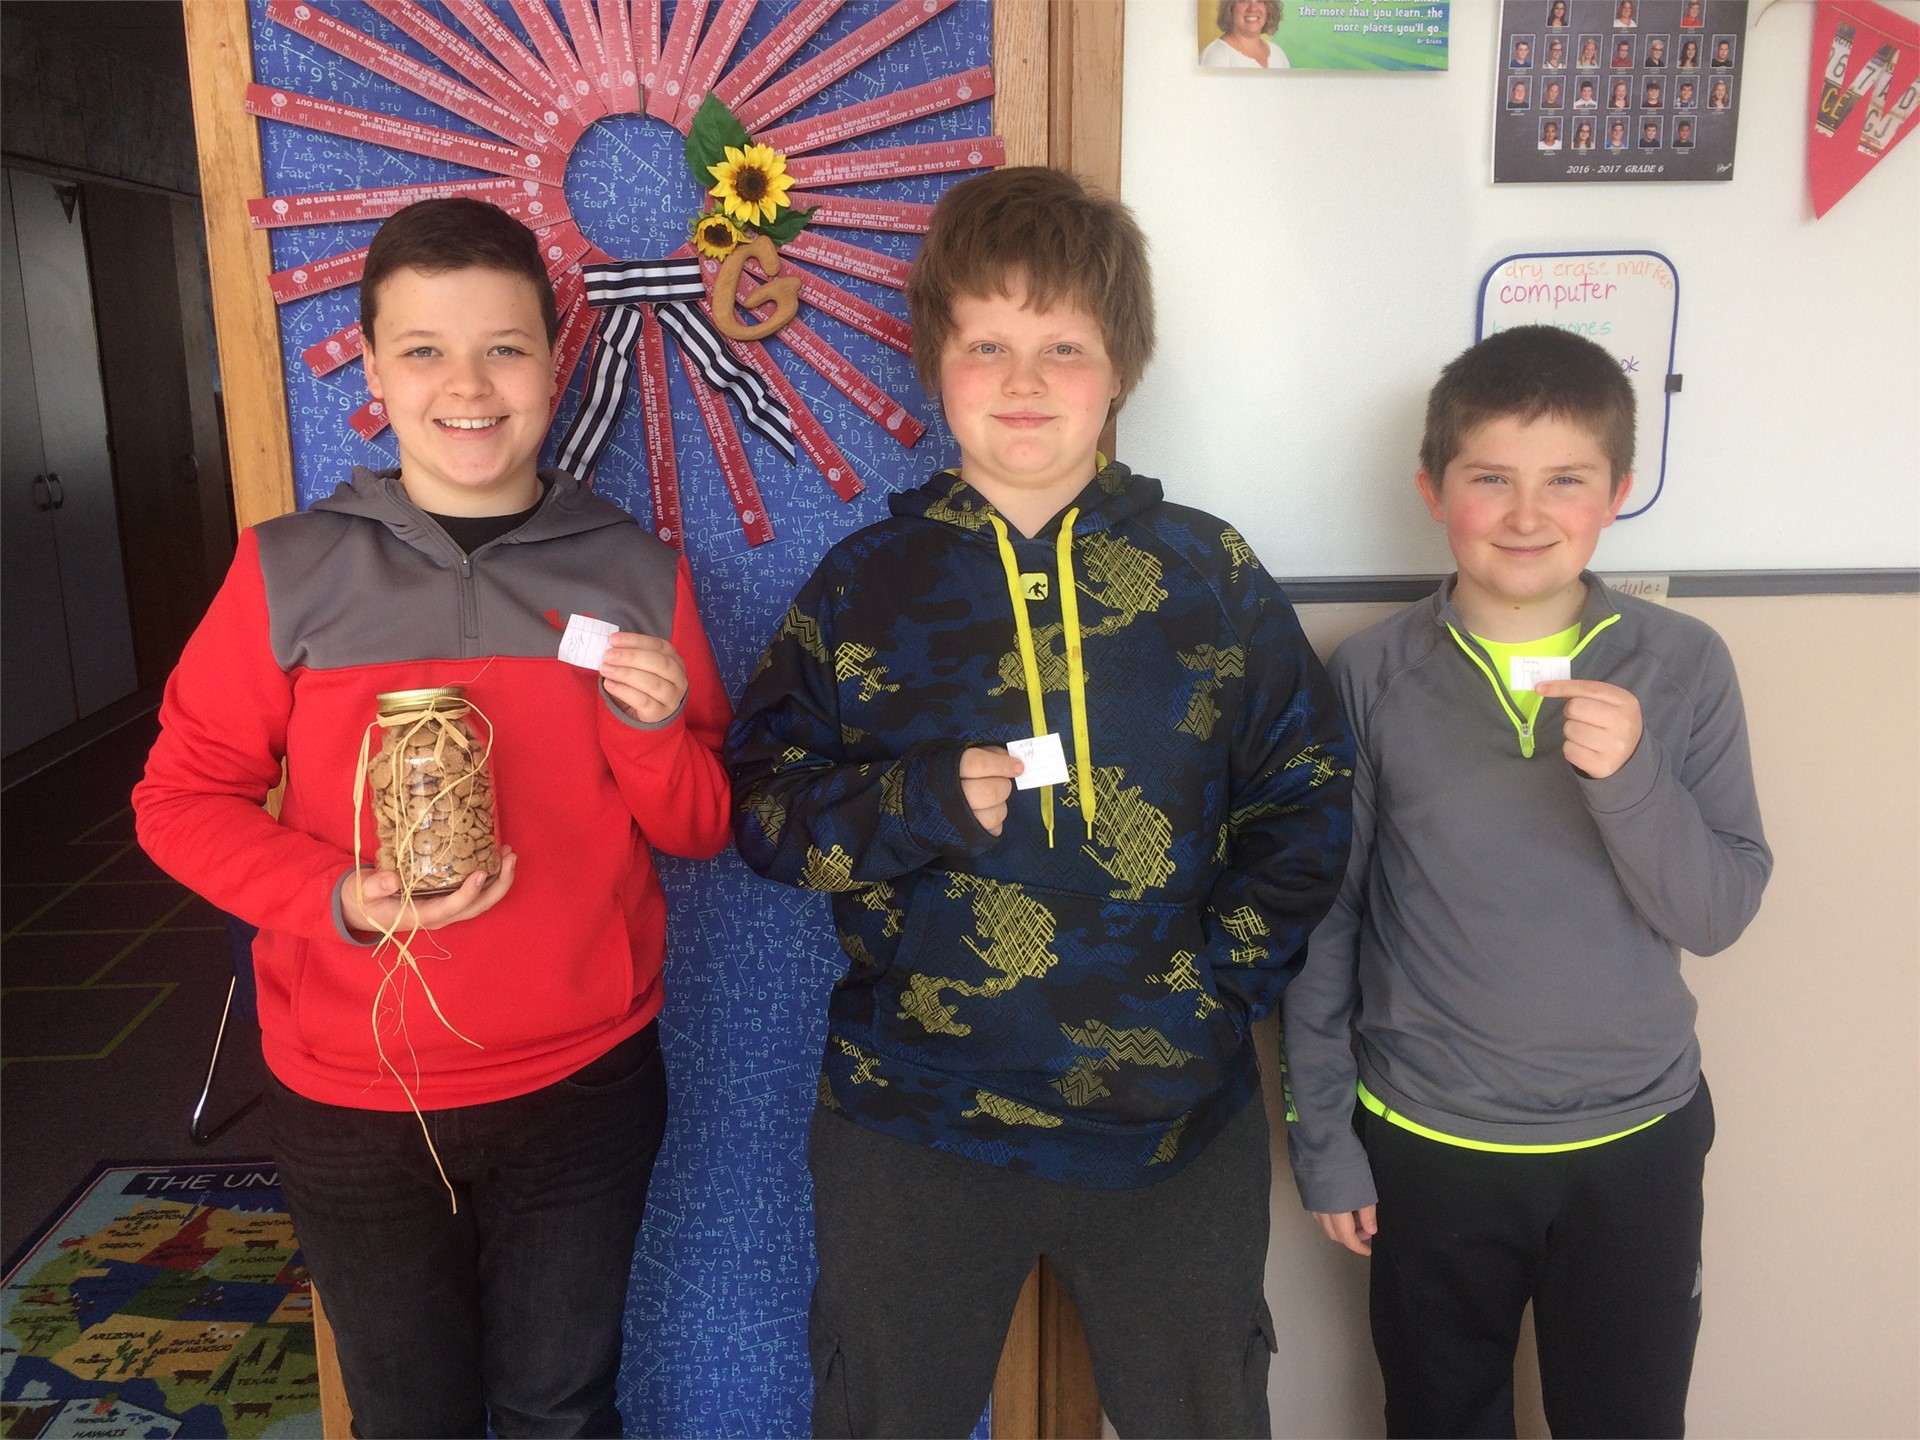 PI Day Estimation Winners